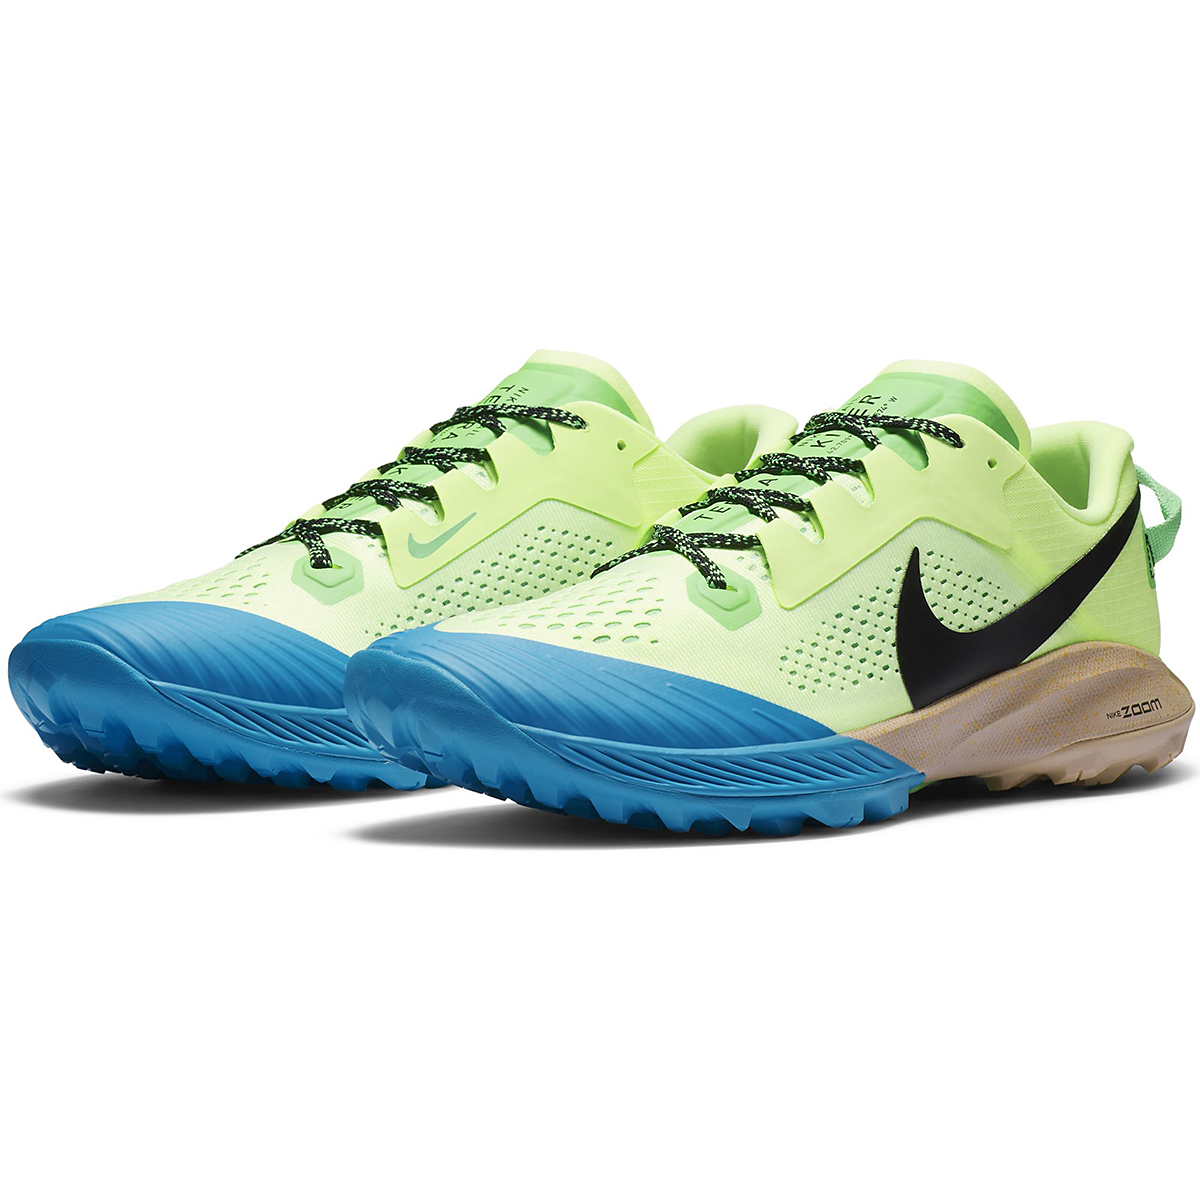 Men's Nike Terra Kiger 6 Trail Running Shoe - Color: Barely Volt/Black-Poison Green - Size: 6 - Width: Regular, Barely Volt/Black-Poison Green, large, image 3